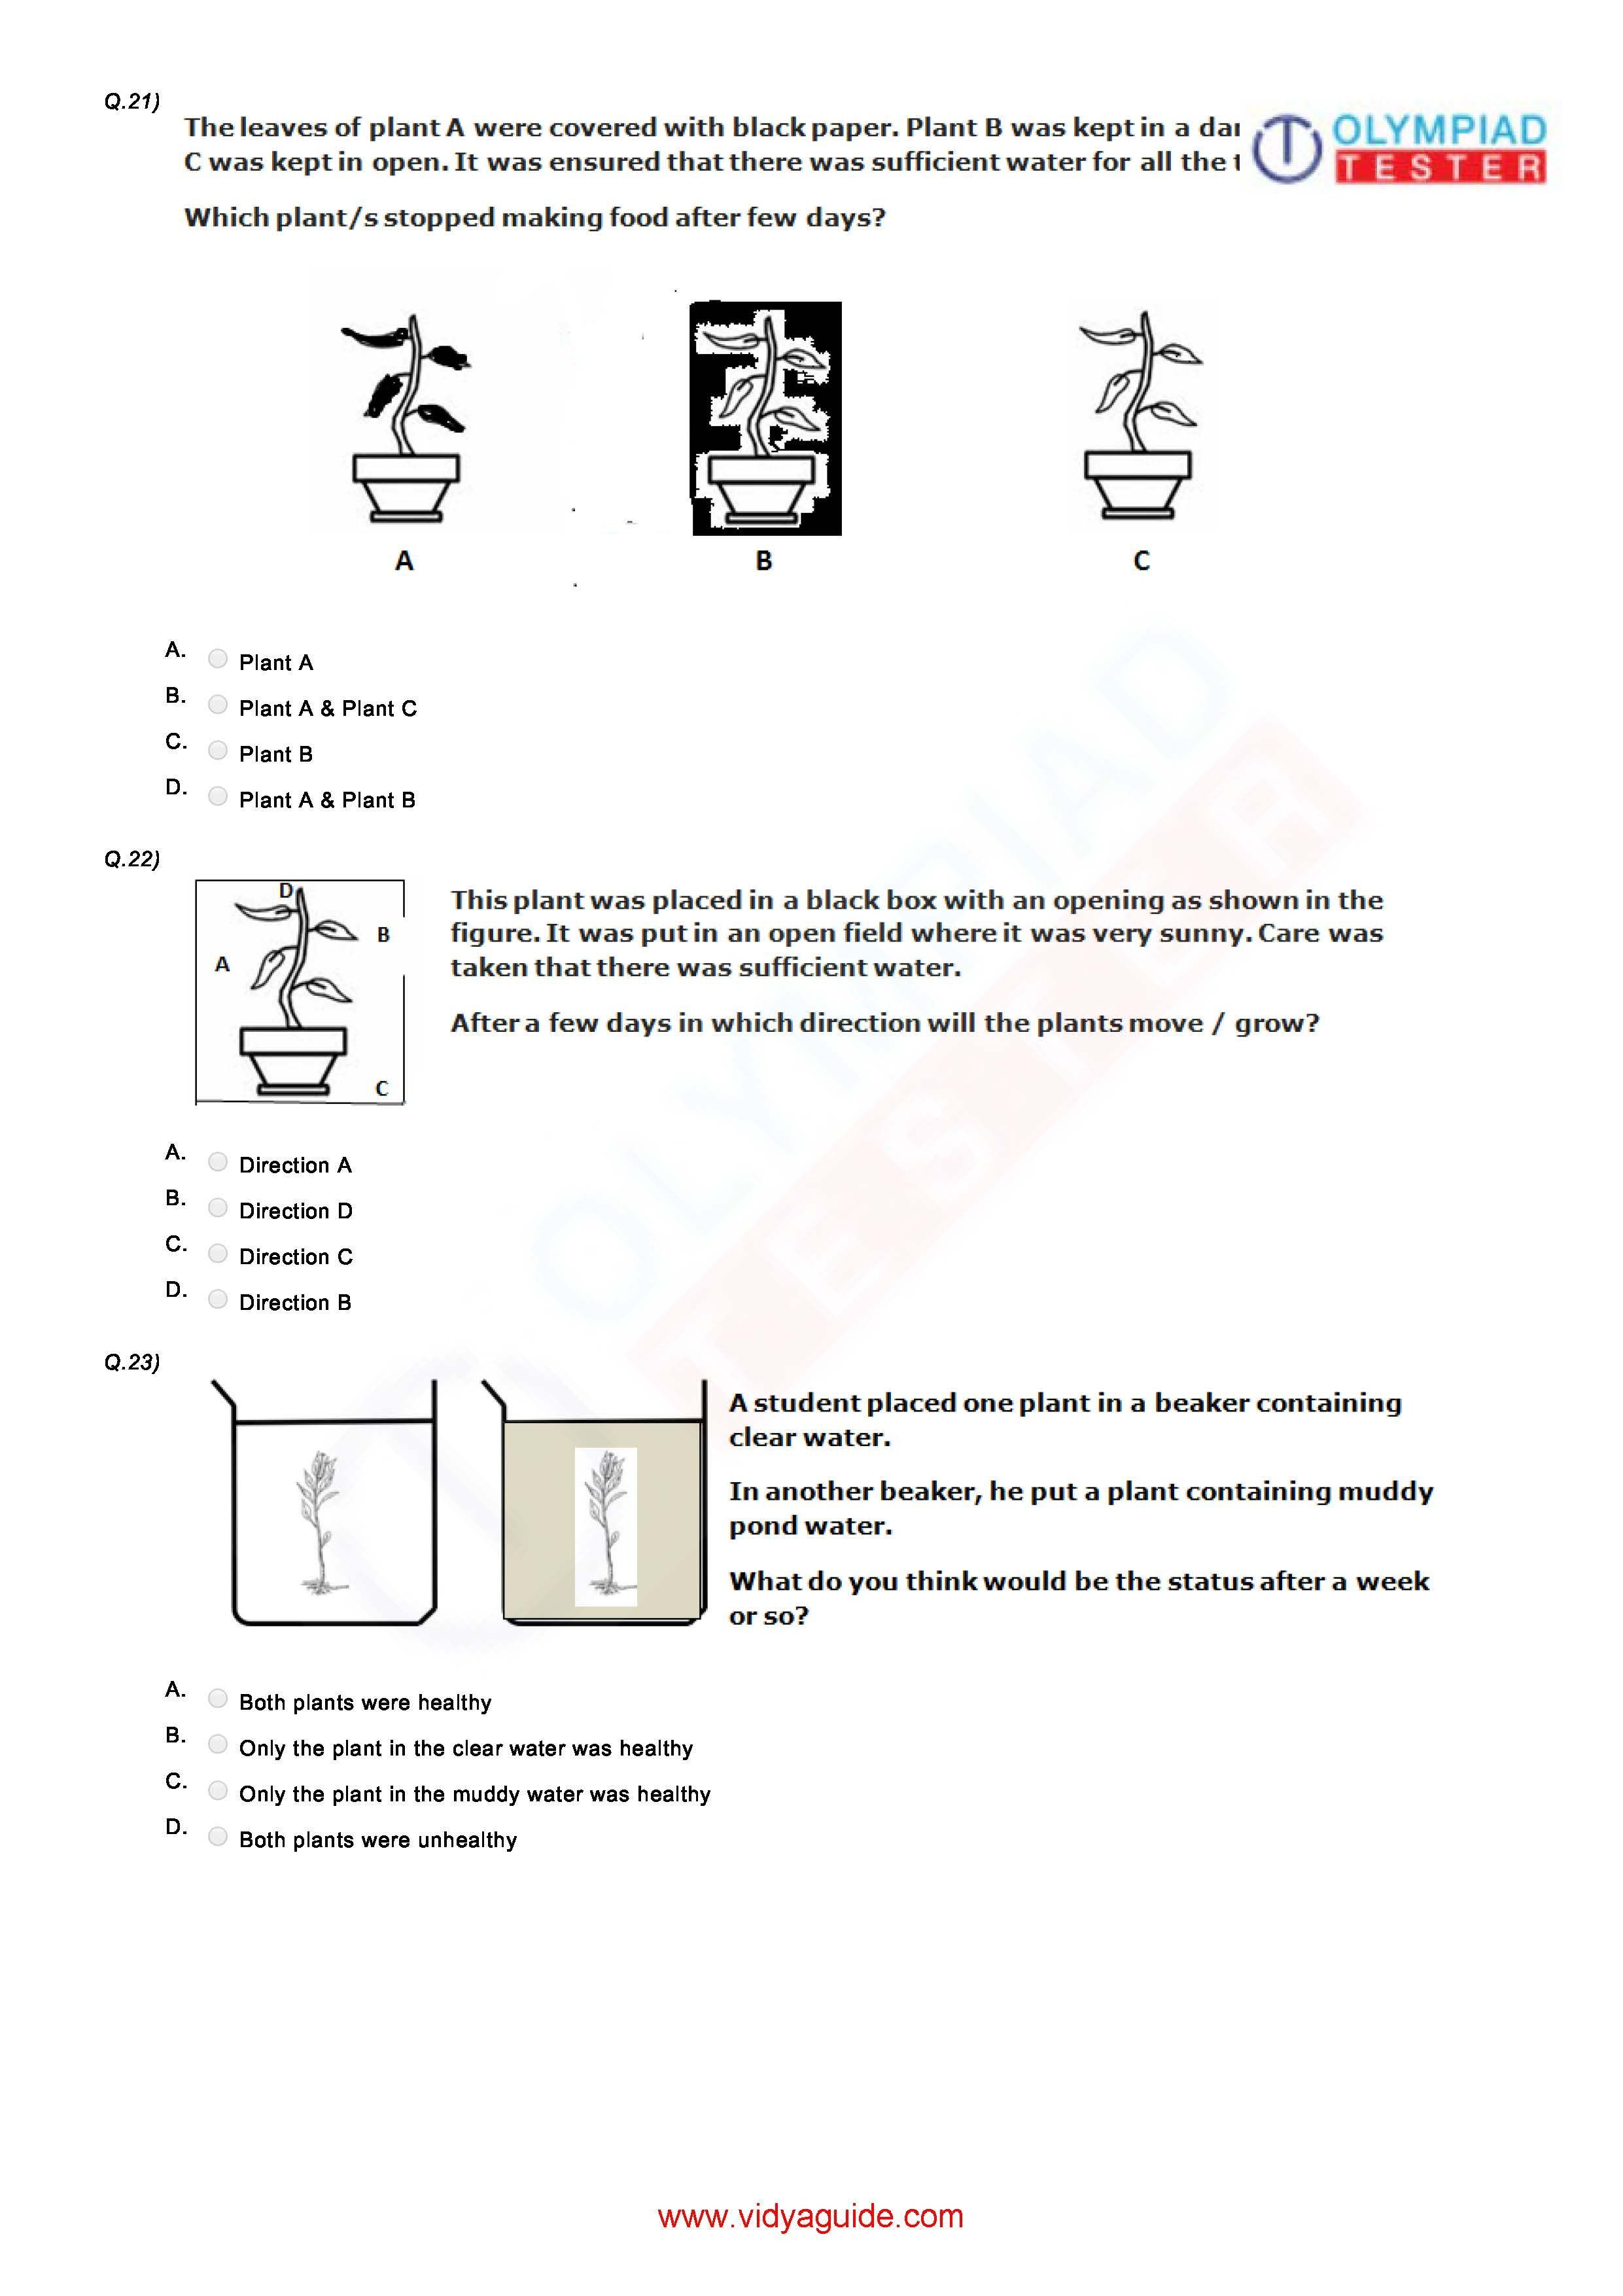 Download Free Grade 3 Science Printable Worksheets Or Take These Tests Online At Vidyaguide Exam Preparation Exam Printable Worksheets